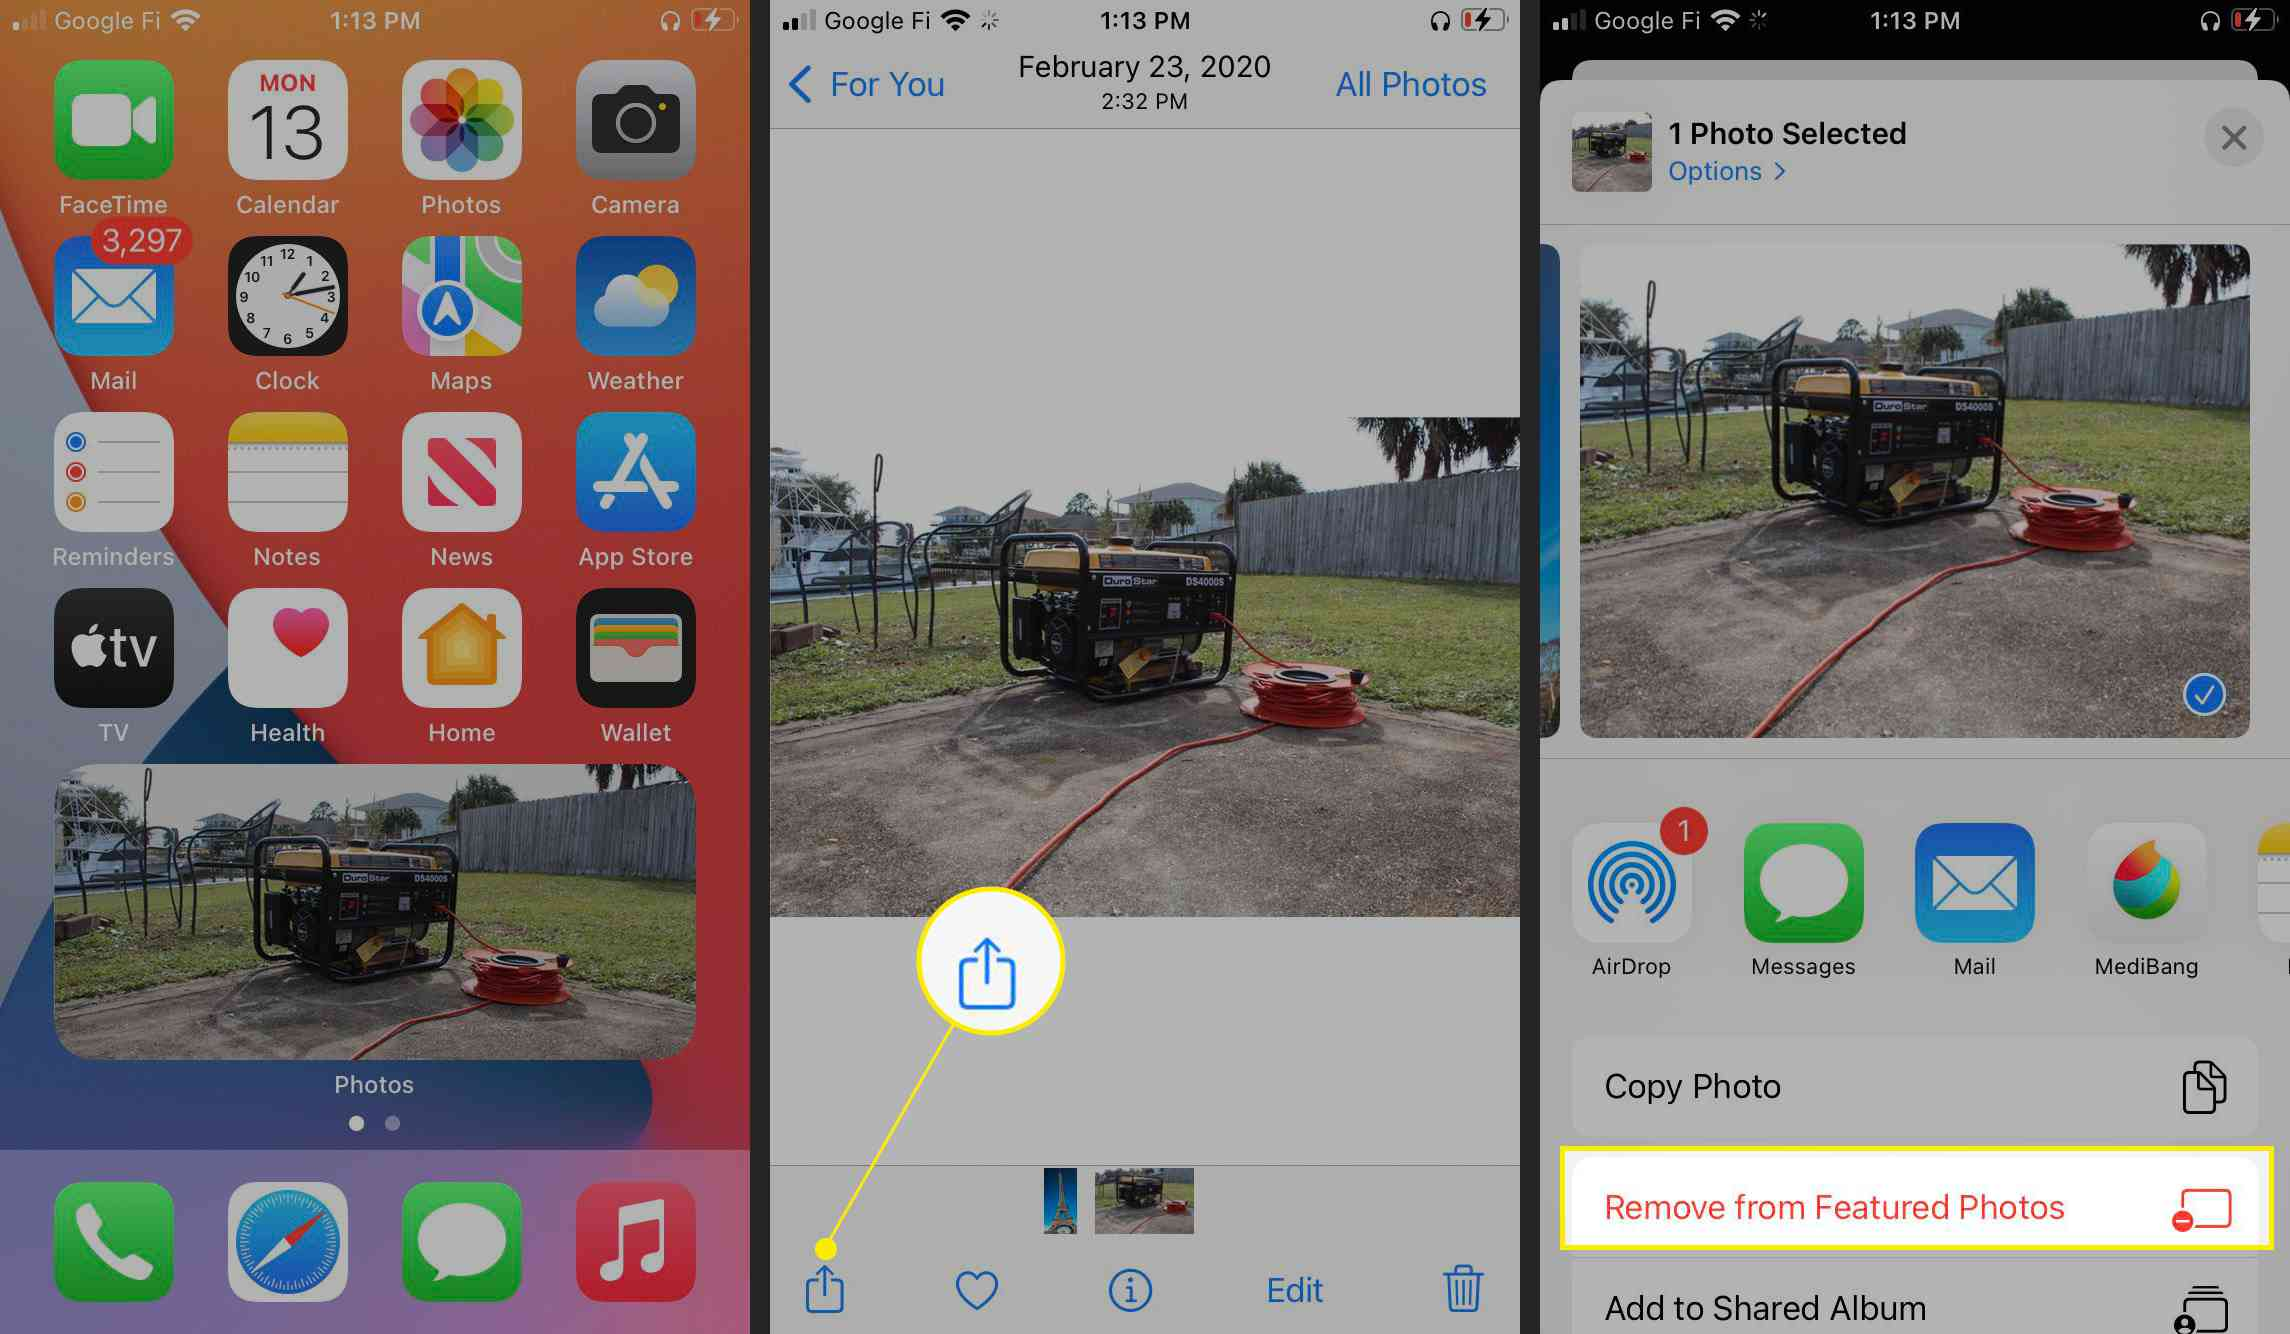 Share icon and Remove from Featured Photos highlighted in iPhone share settings.